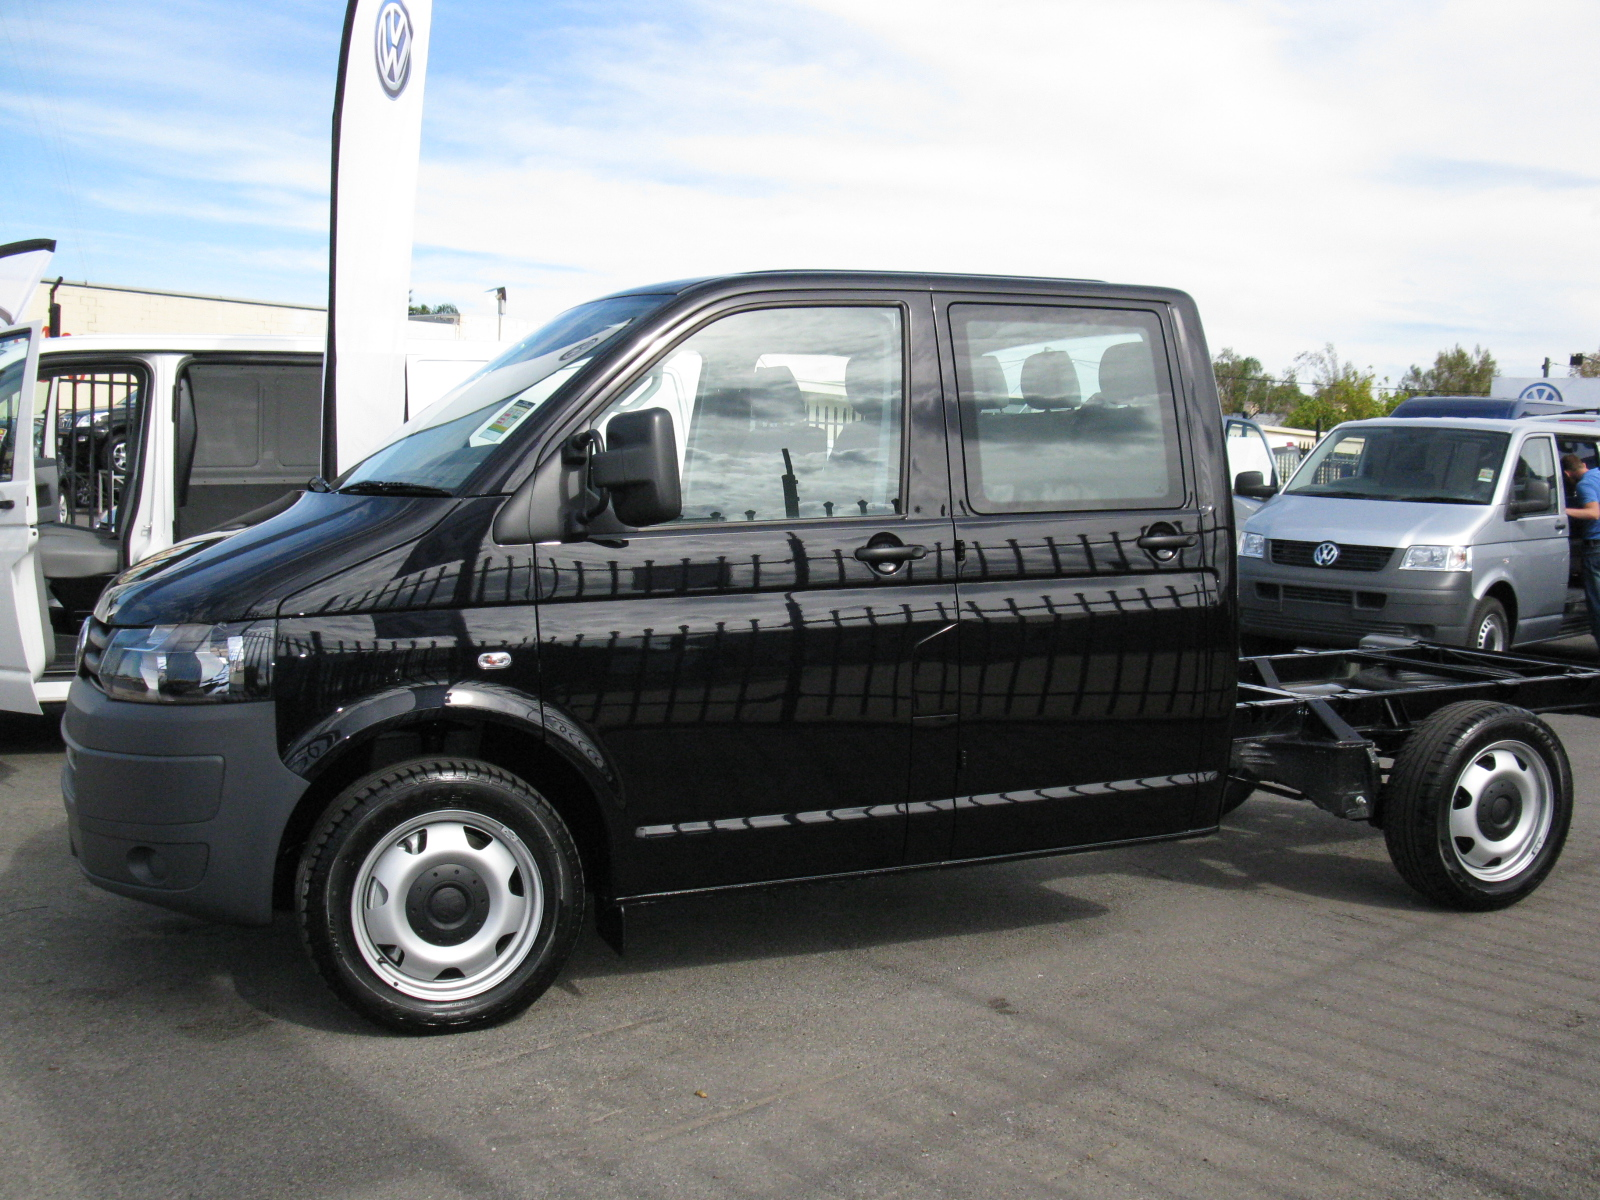 The motoring world sixth generation of volkswagen 39 s transporter now available to order in - Order a cab ...